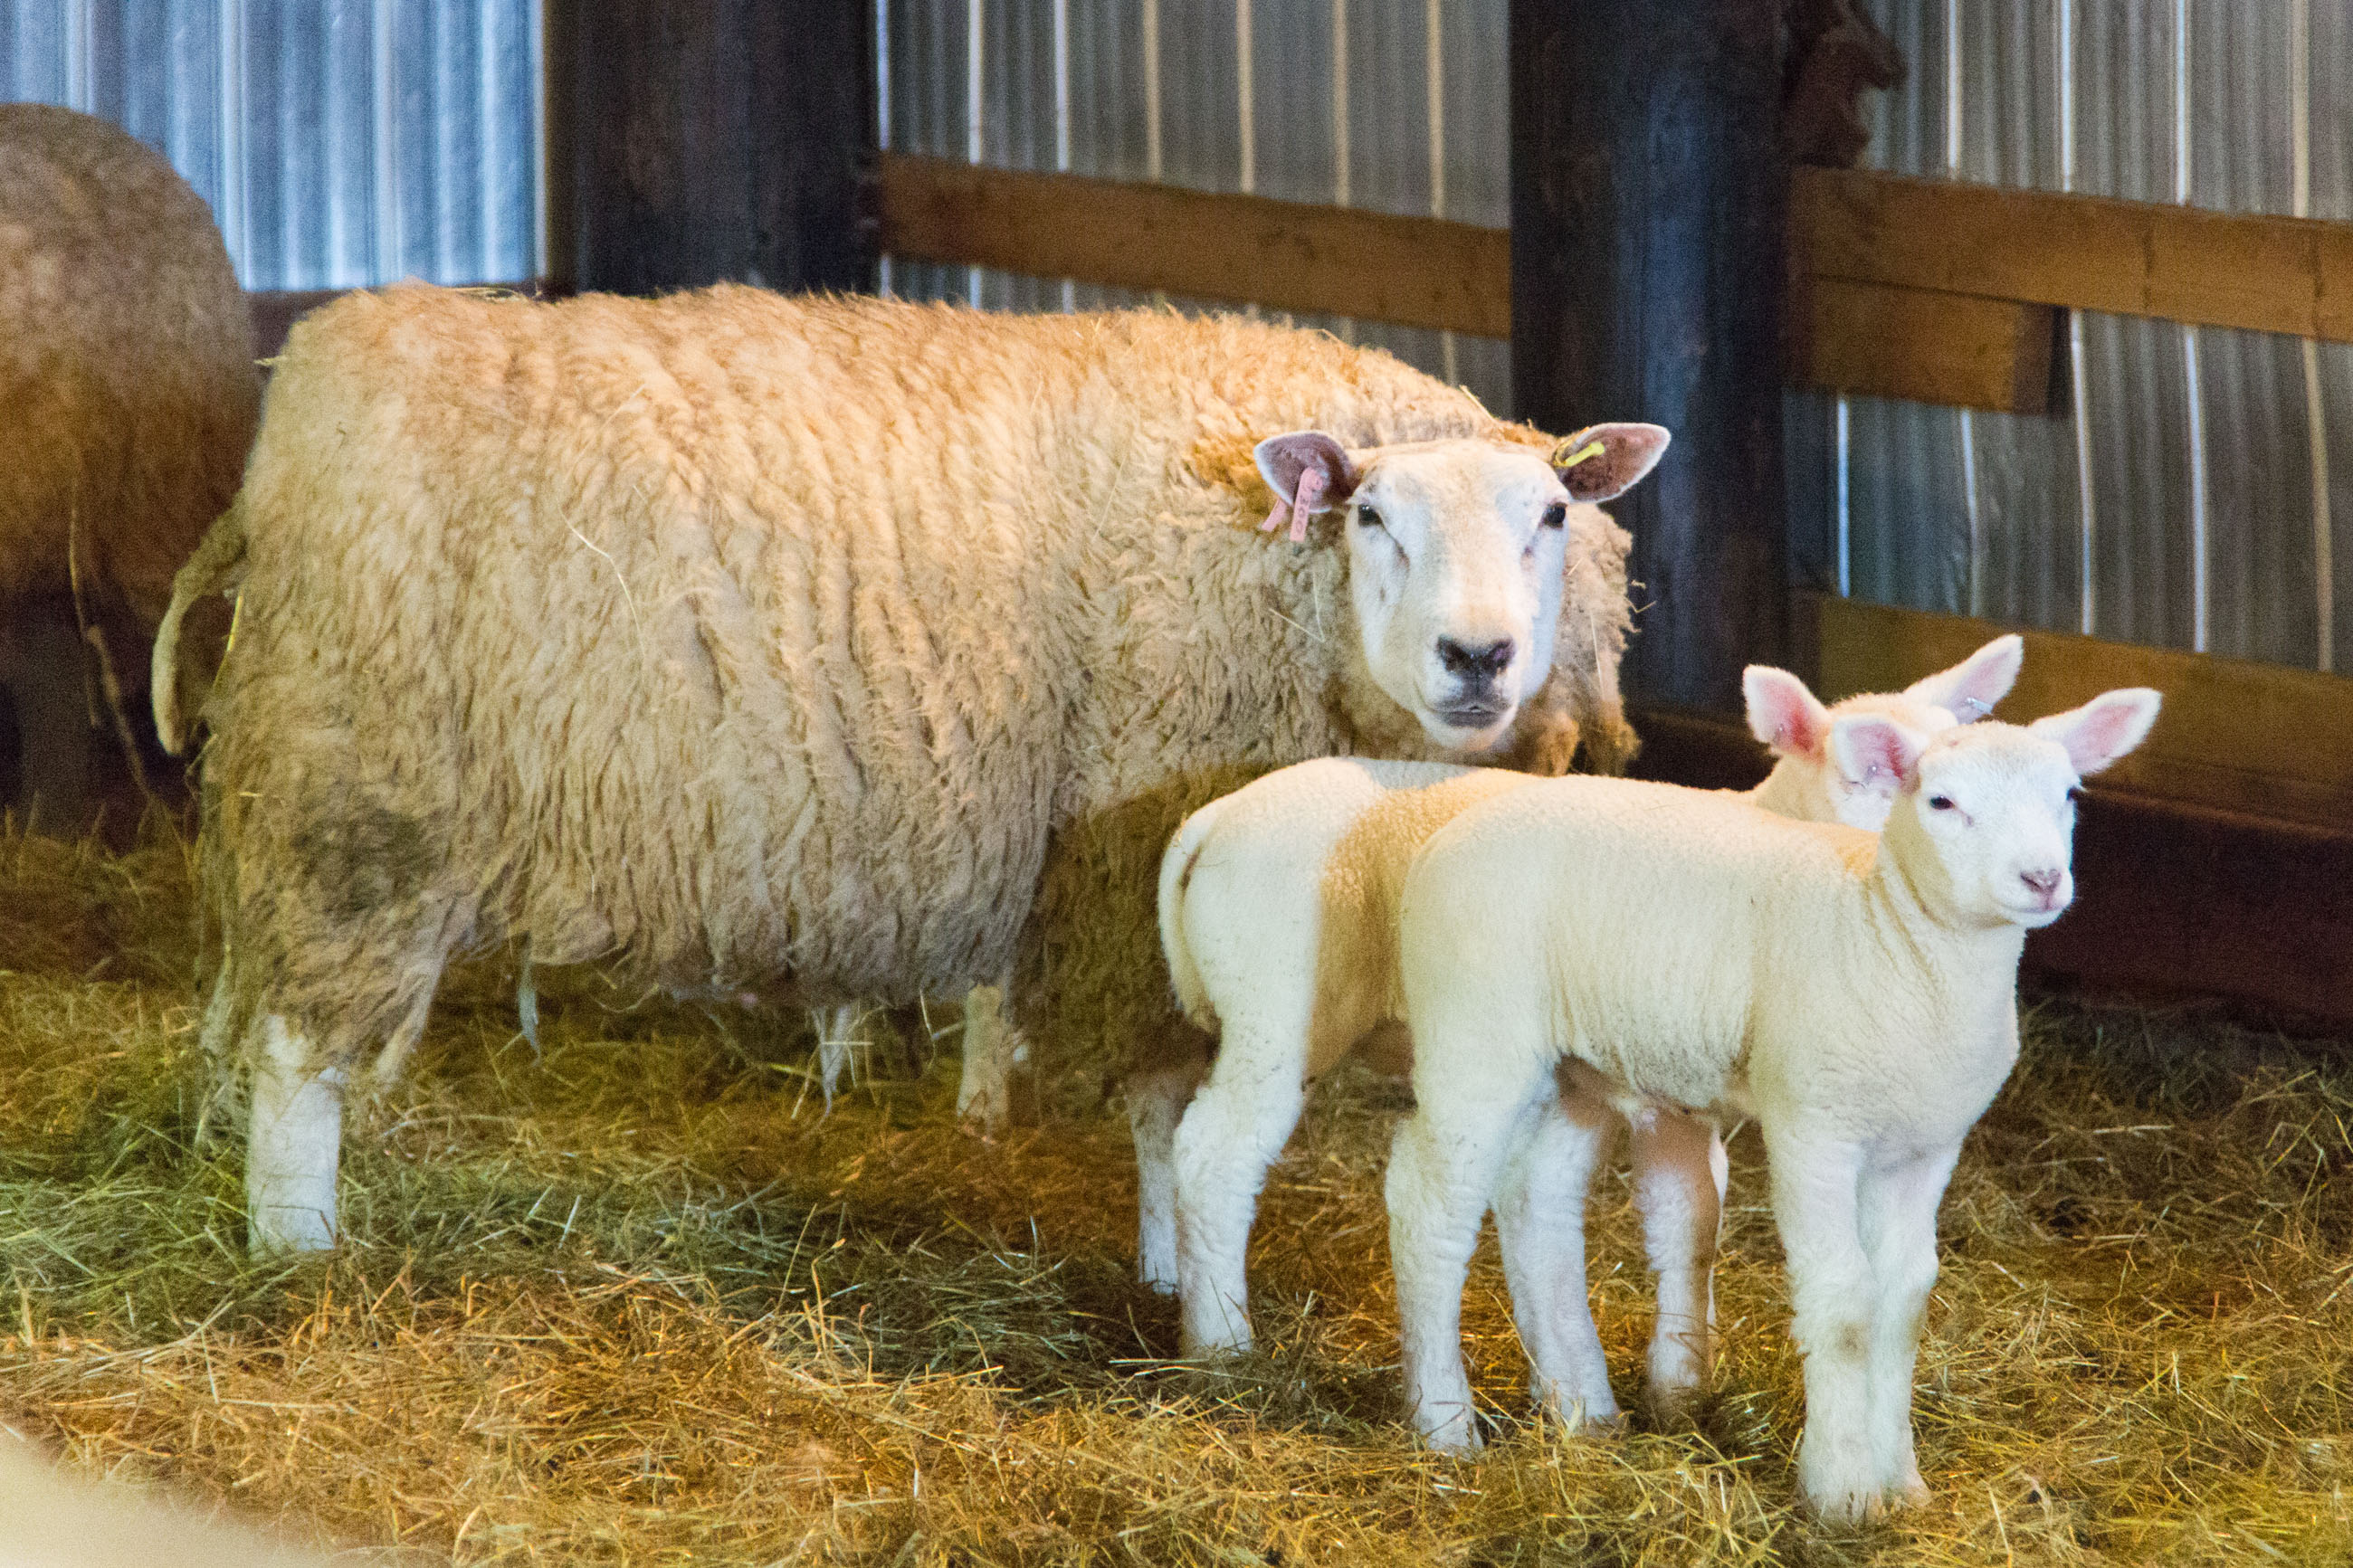 Mother and Lambs, Adorable, Soft, Maternal, Naive, HQ Photo